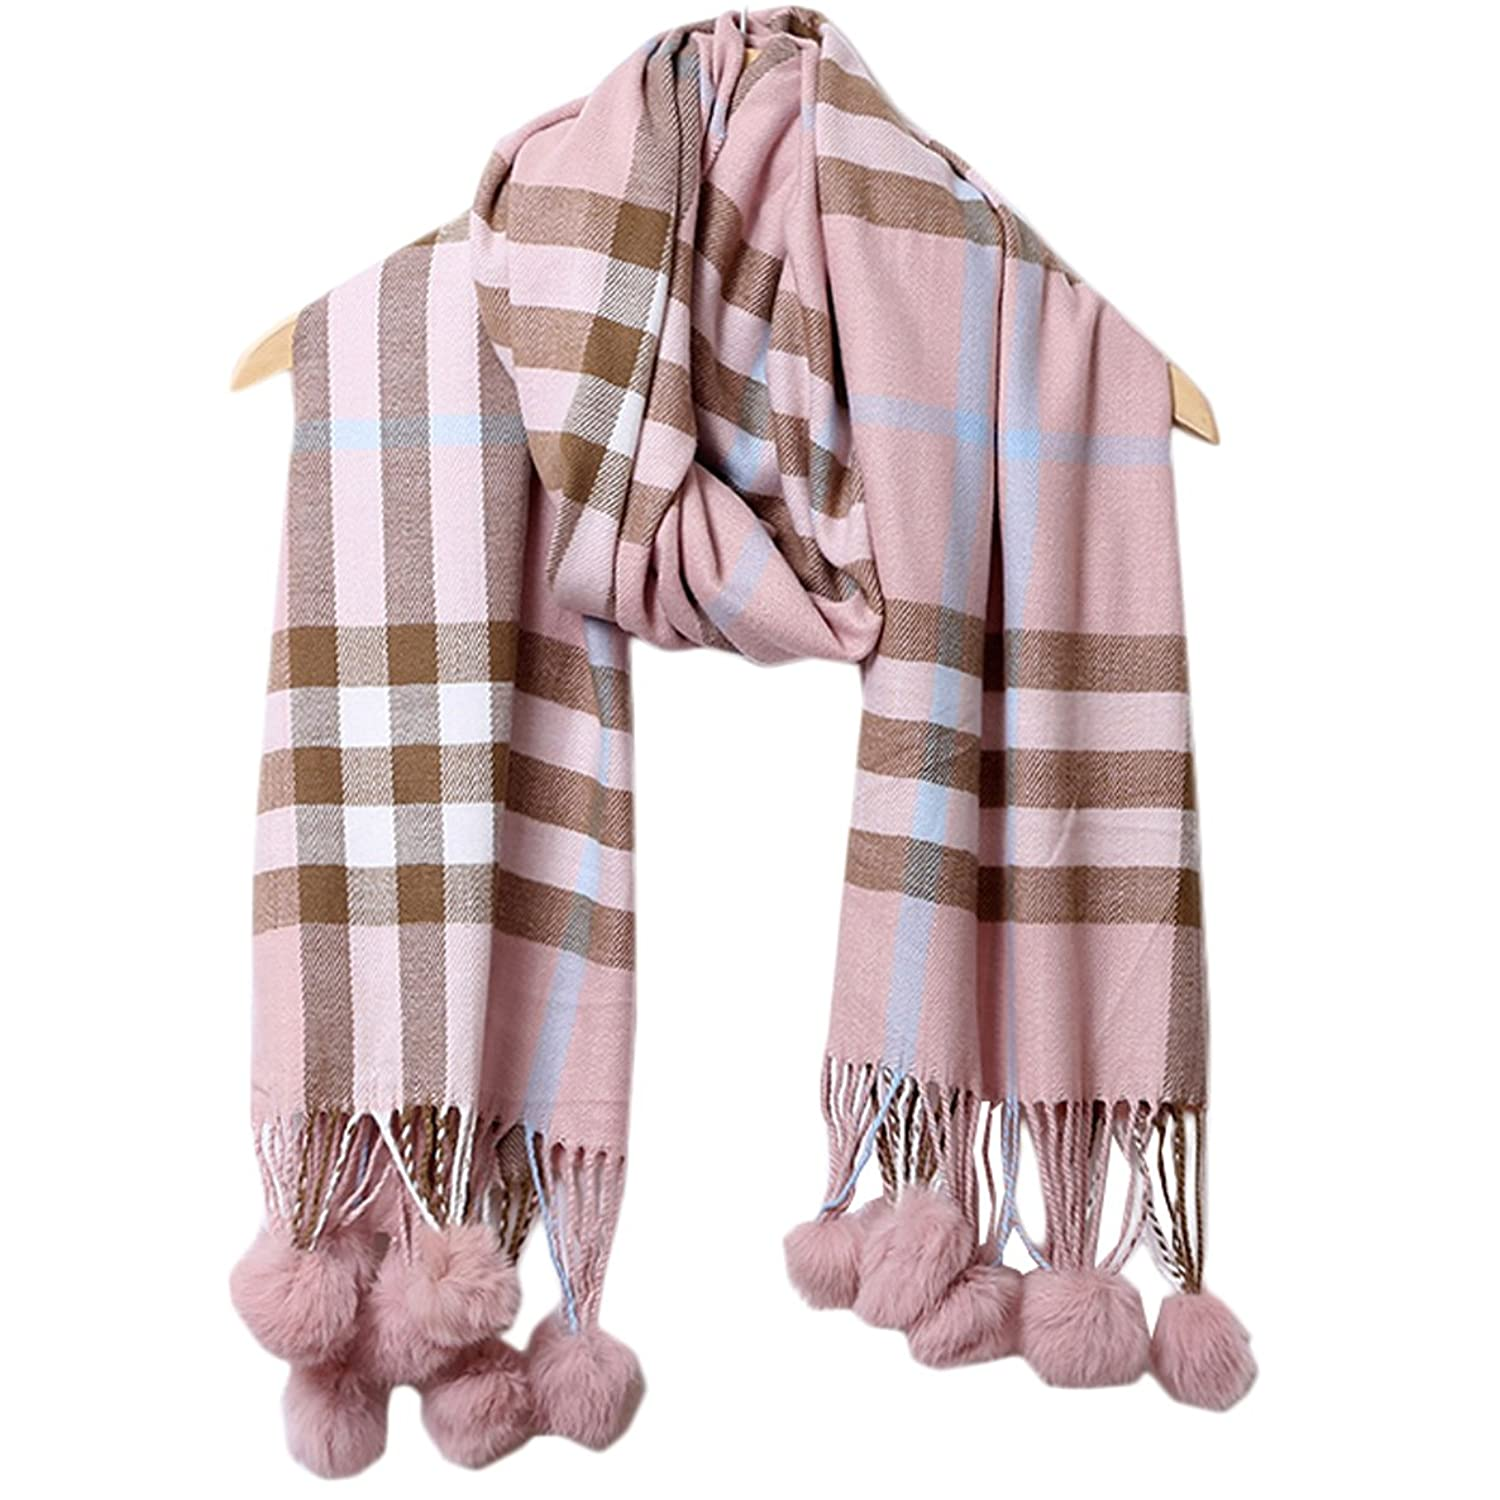 Life Star High-end Real Rabbit Fur Ball in Autumn and Winter Plaid Scarves